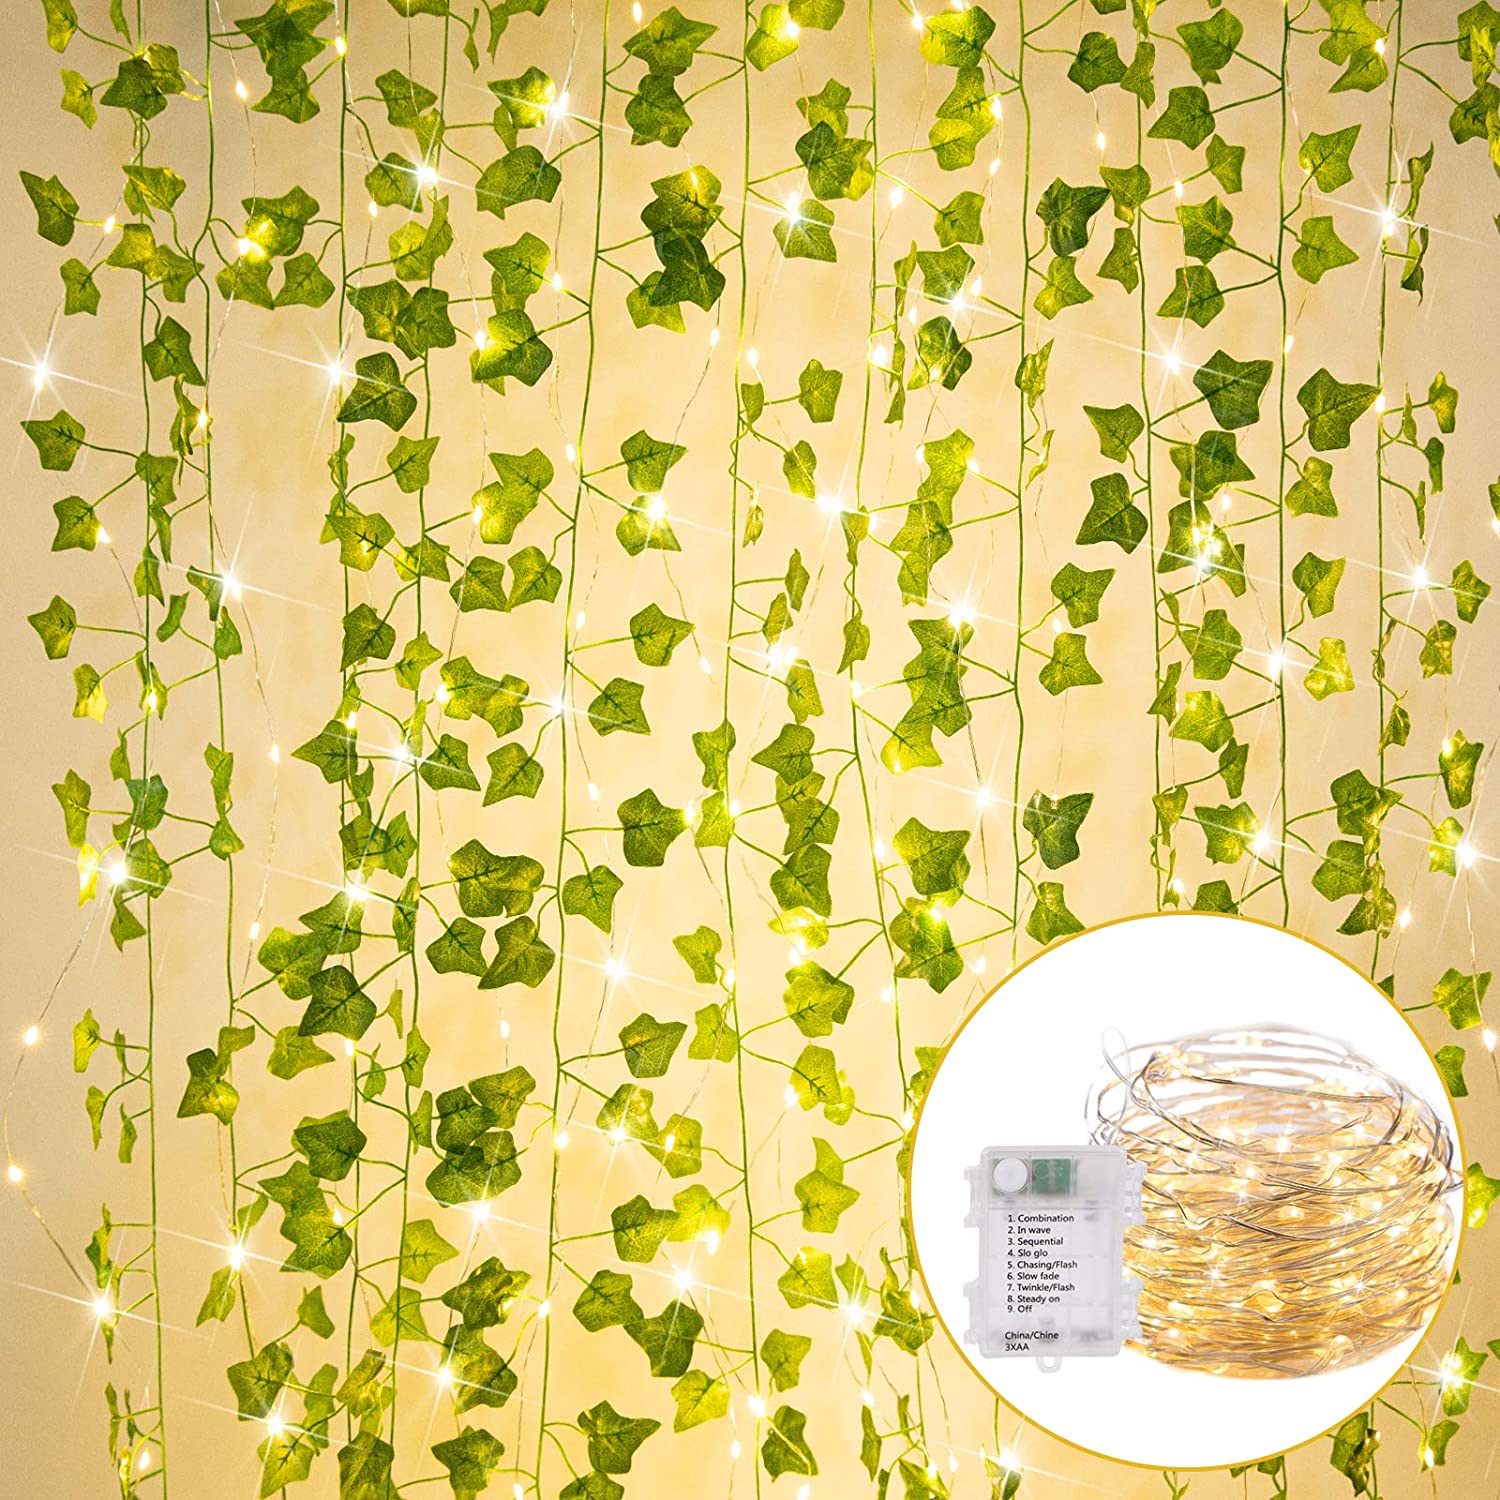 36 Ft. String Lights with Vines Battery Operated 12 Pcs 7 Ft. Artificial Ivy Vine 110 LED Vine Lights 8 Modes Ivy Lights for Bedroom Room Wall Wedding Indoor Party Festival Decor (Warm White)